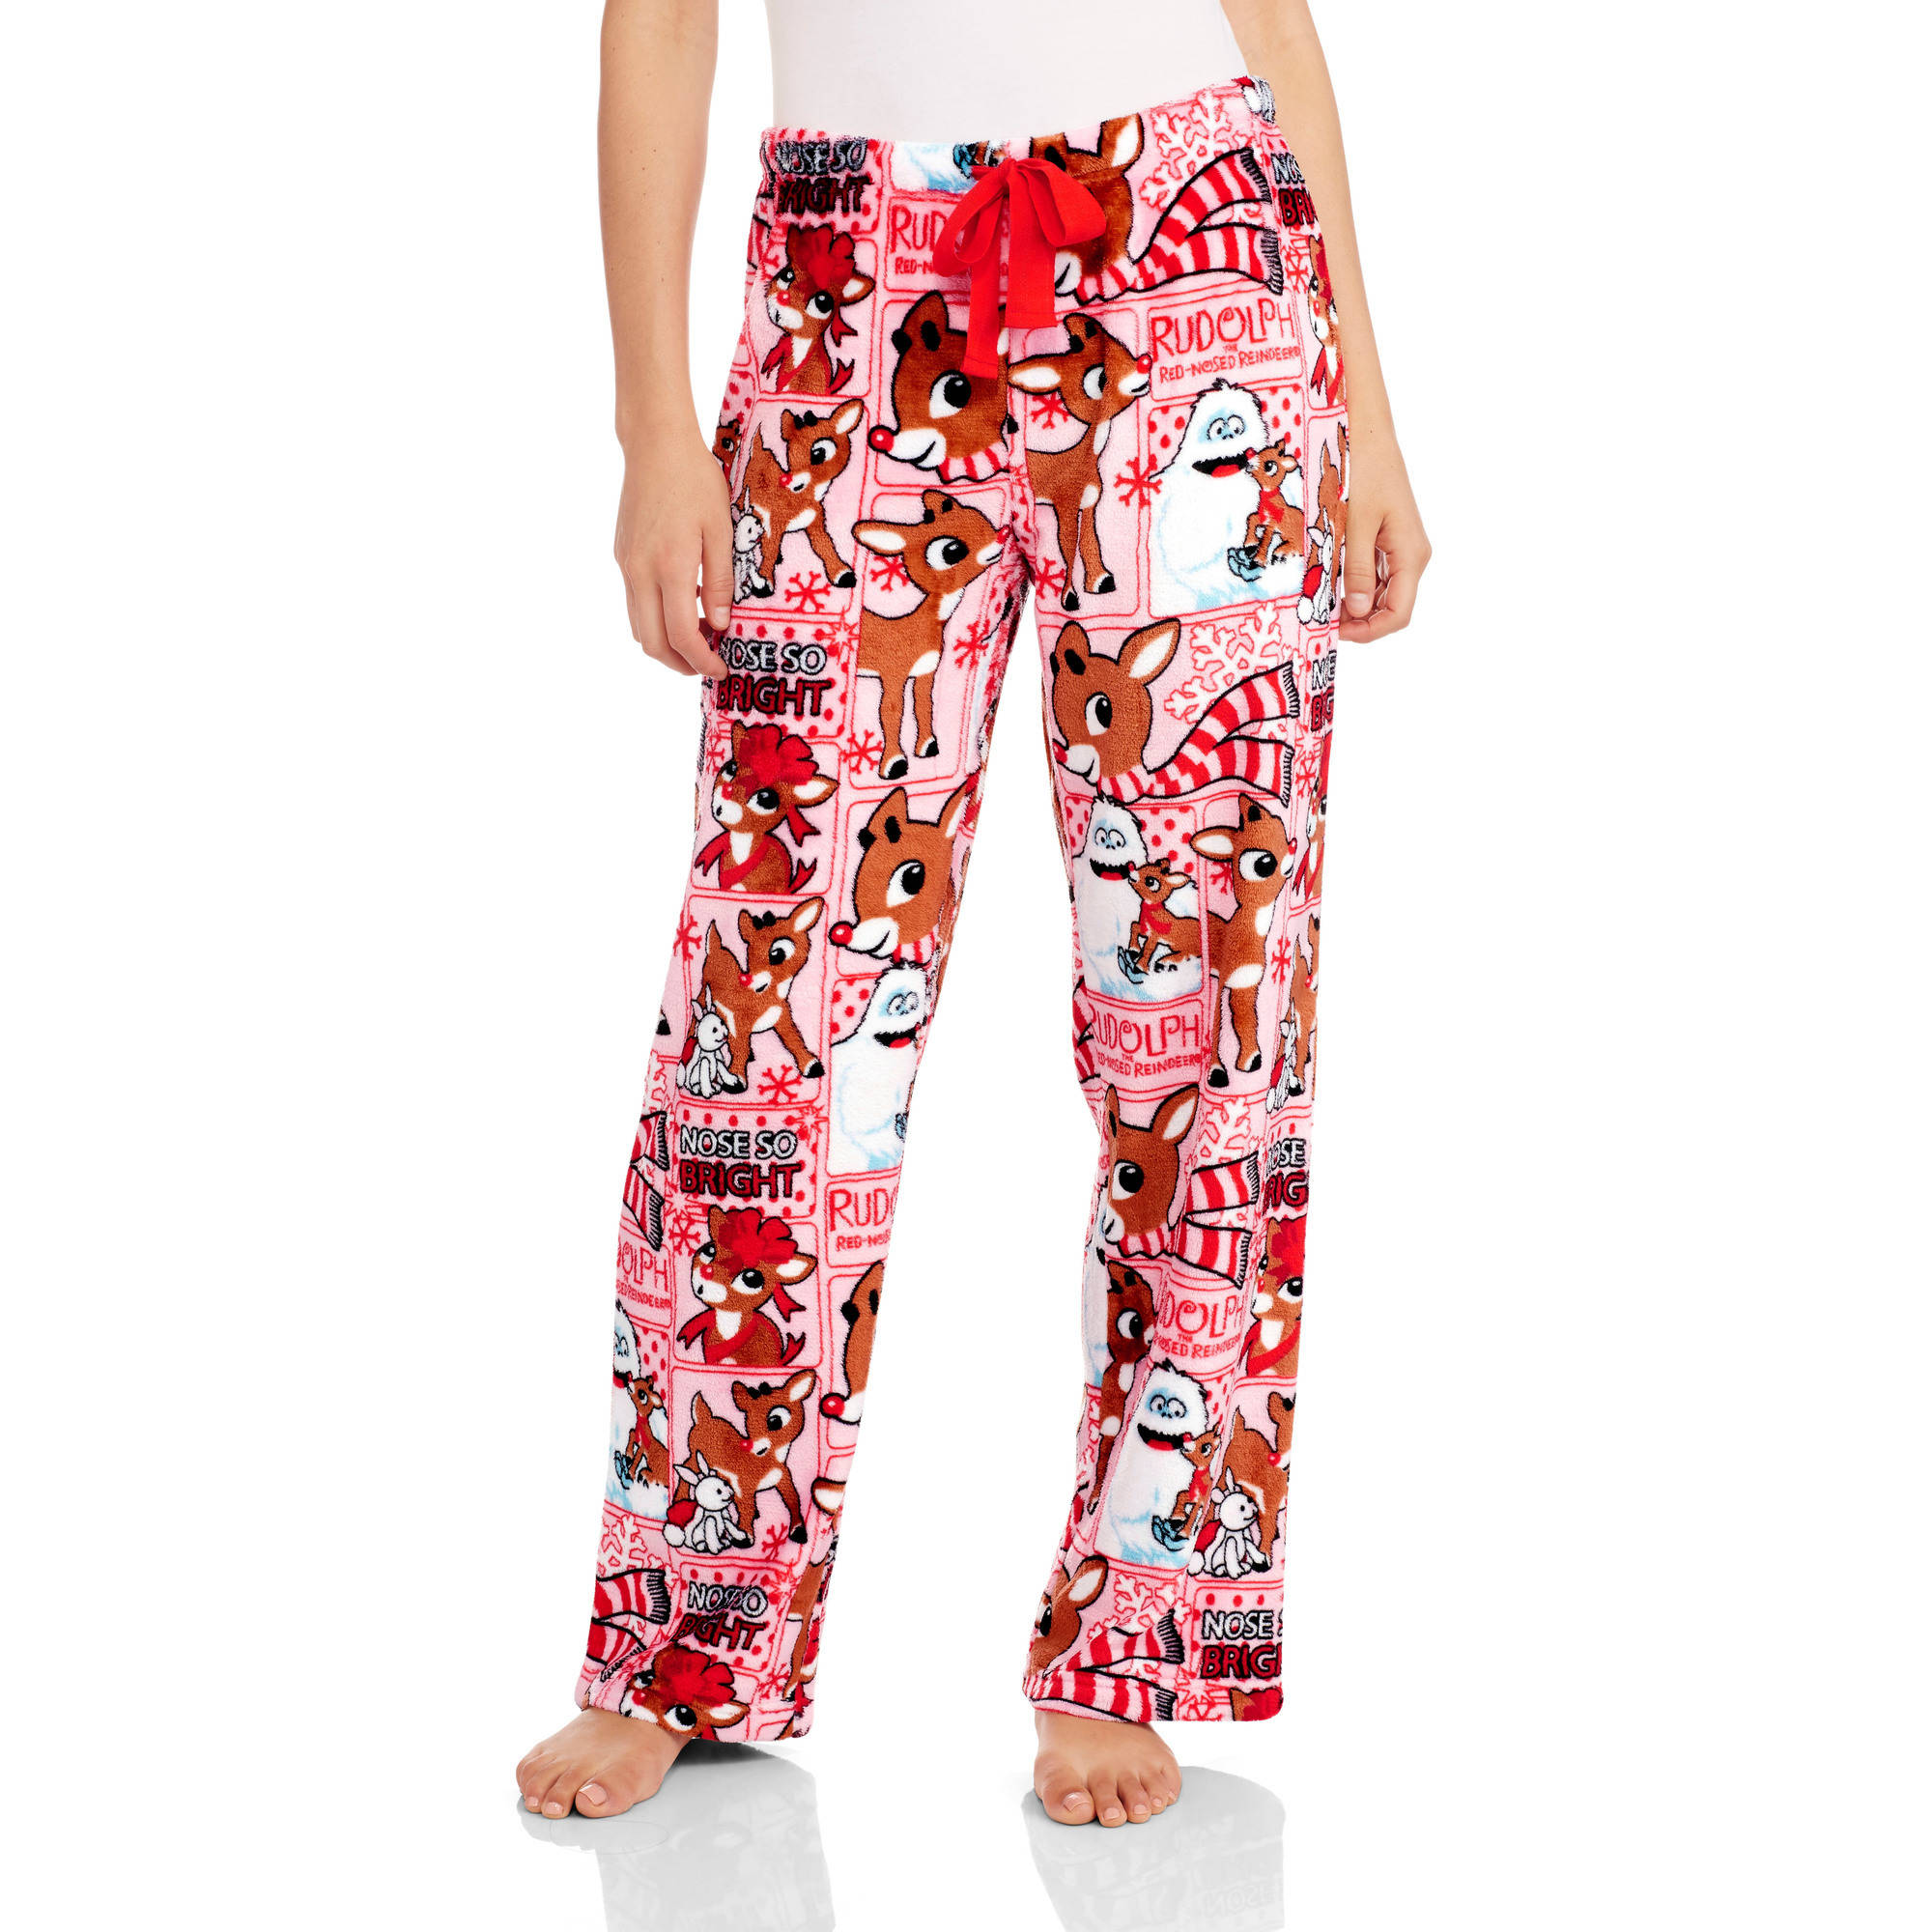 Rudolph Women's License Pajama Super Minky Plush Fleece Sleep Pant